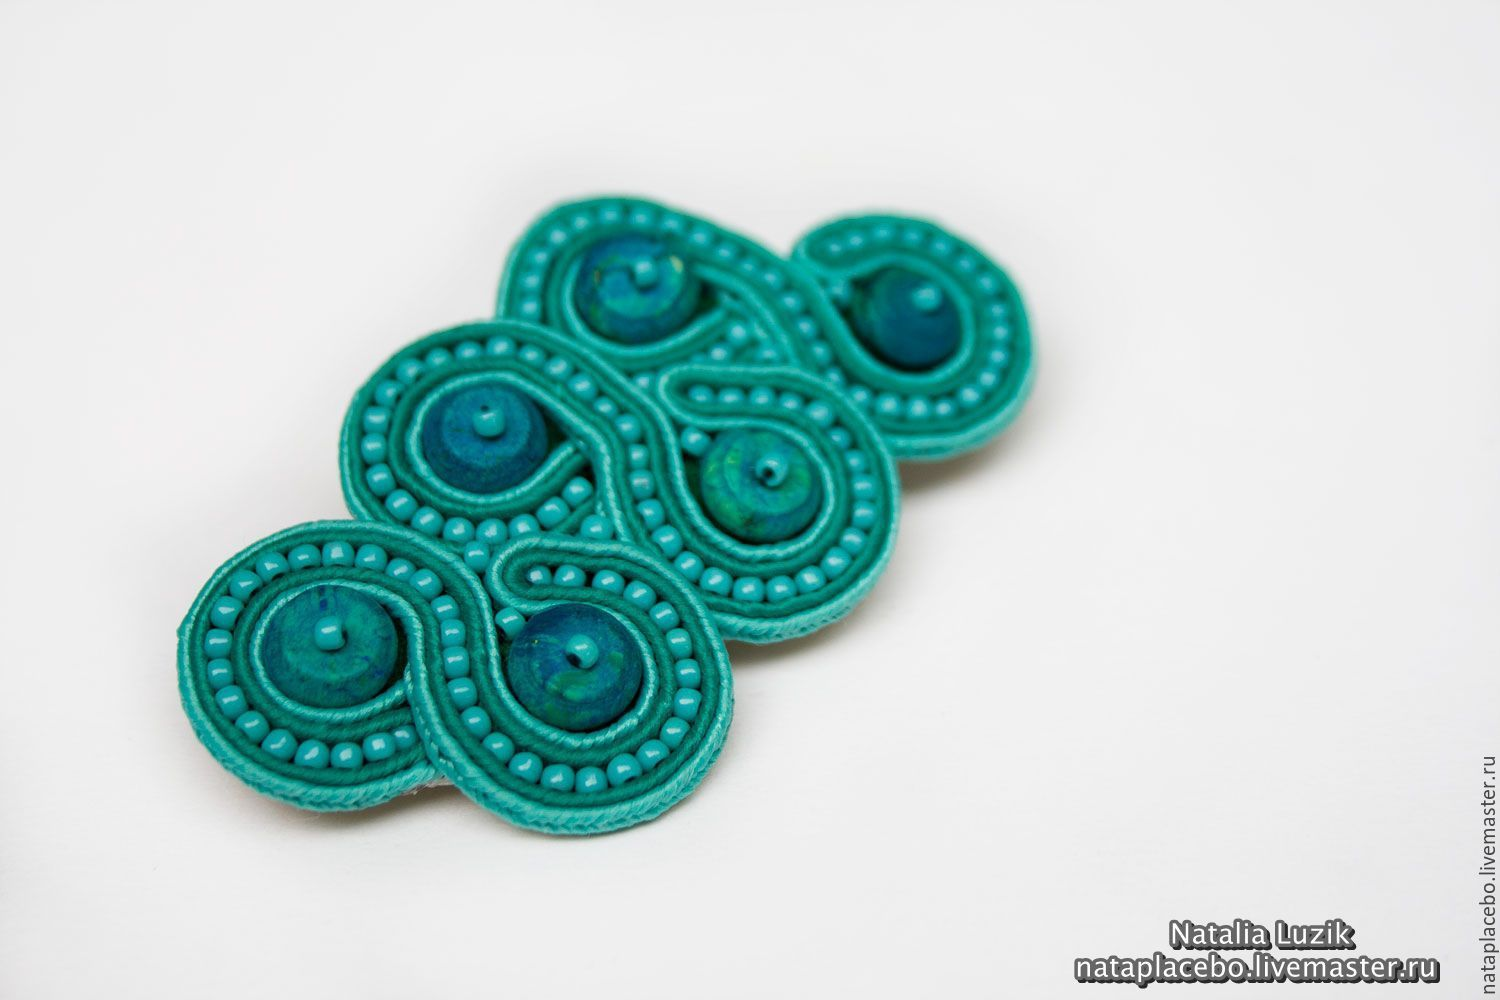 Soutache brooch Sea wave turquoise buy soutache jewelry, Brooches, St. Petersburg,  Фото №1